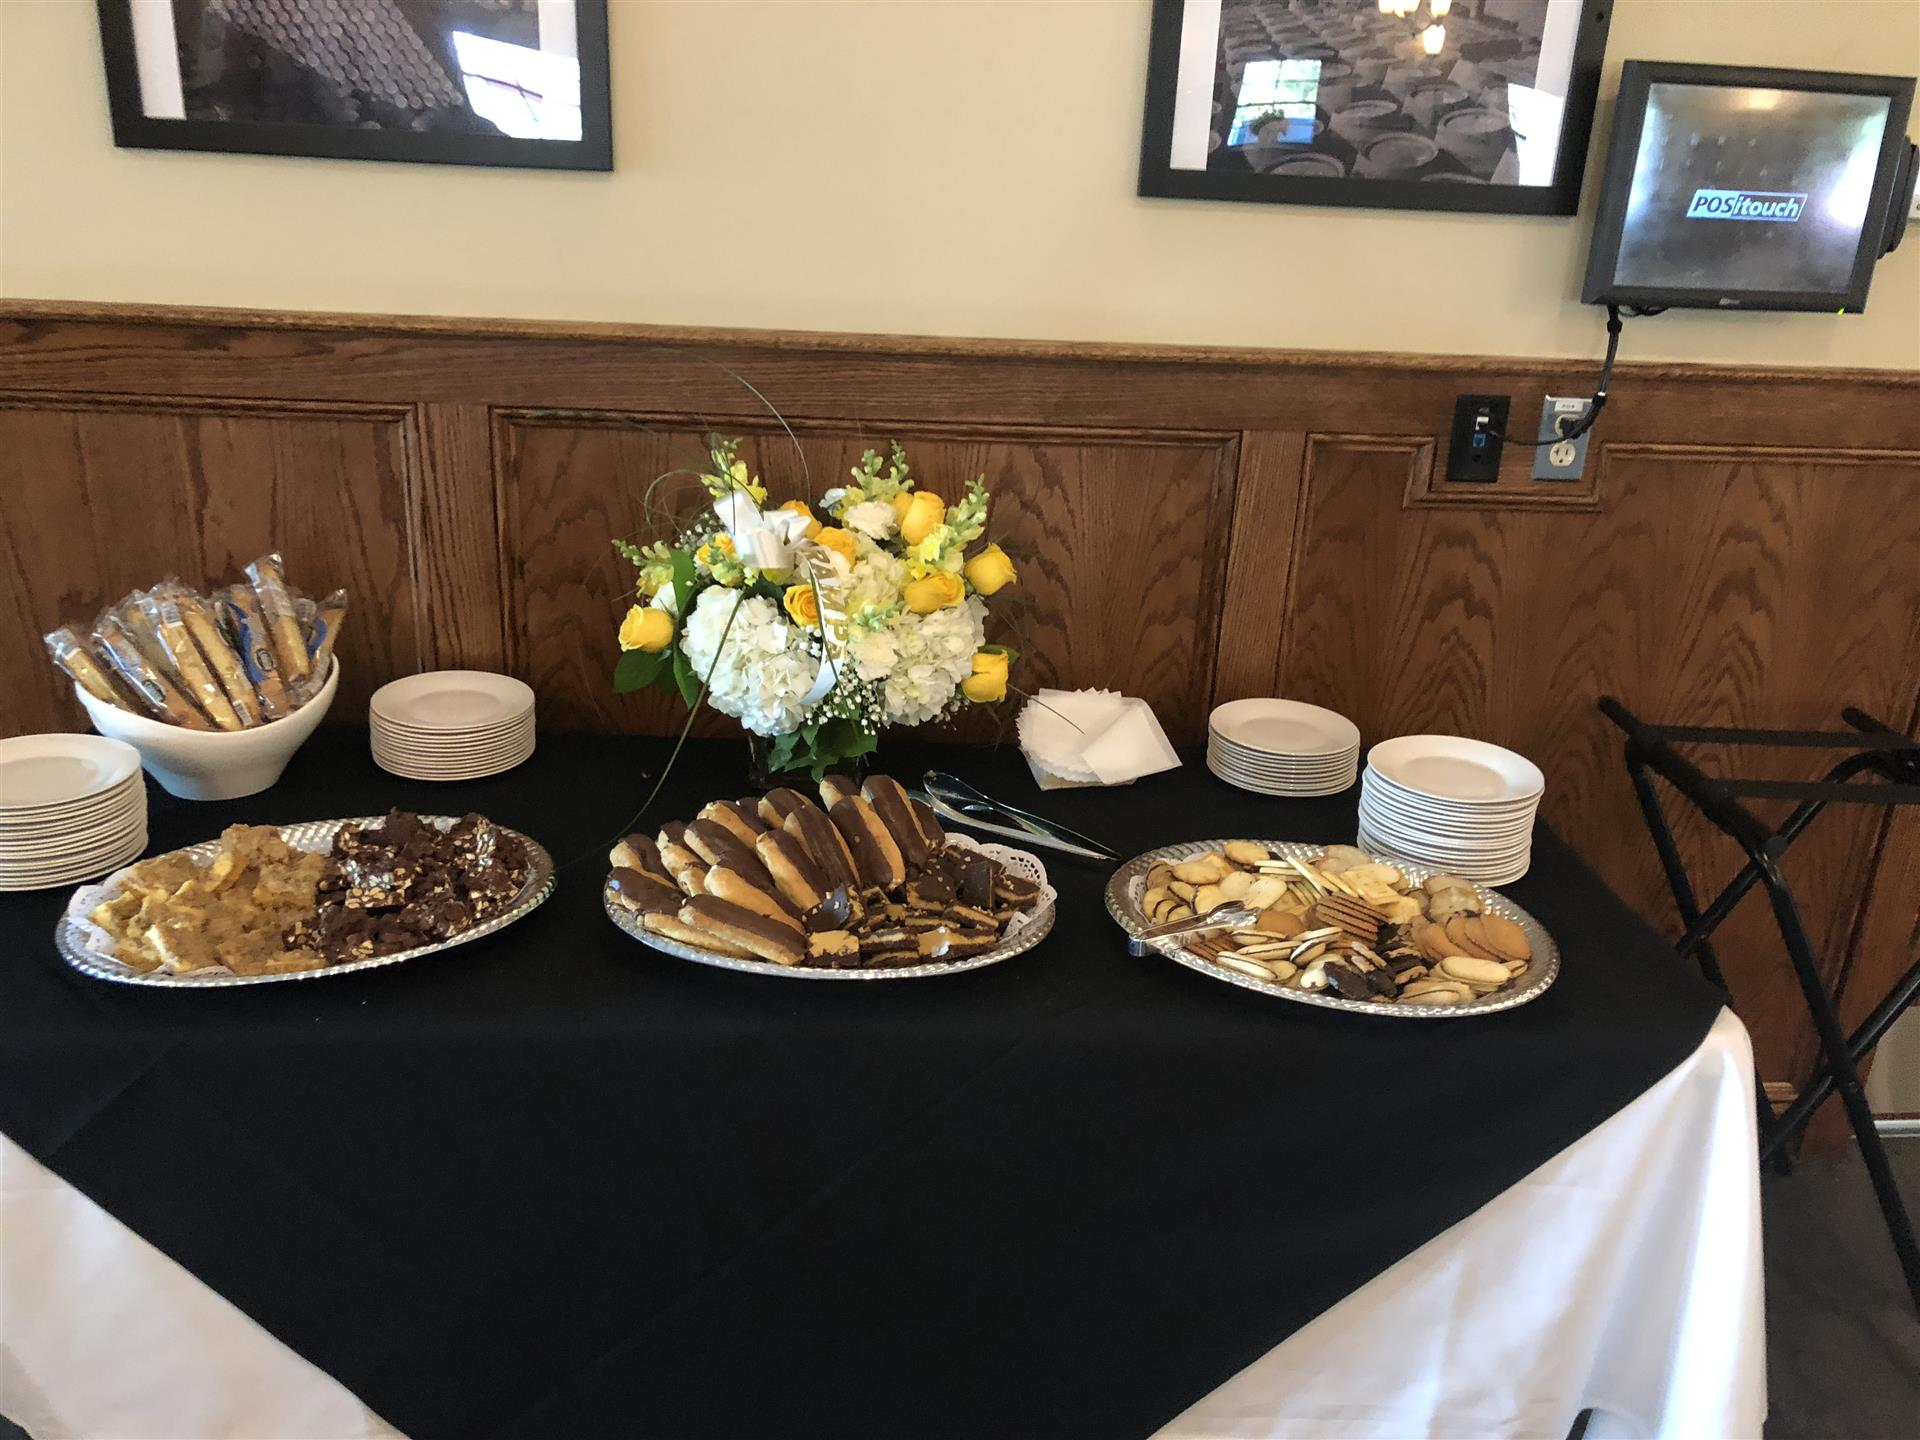 catering assortment of various desserts on a table with plates and napkins